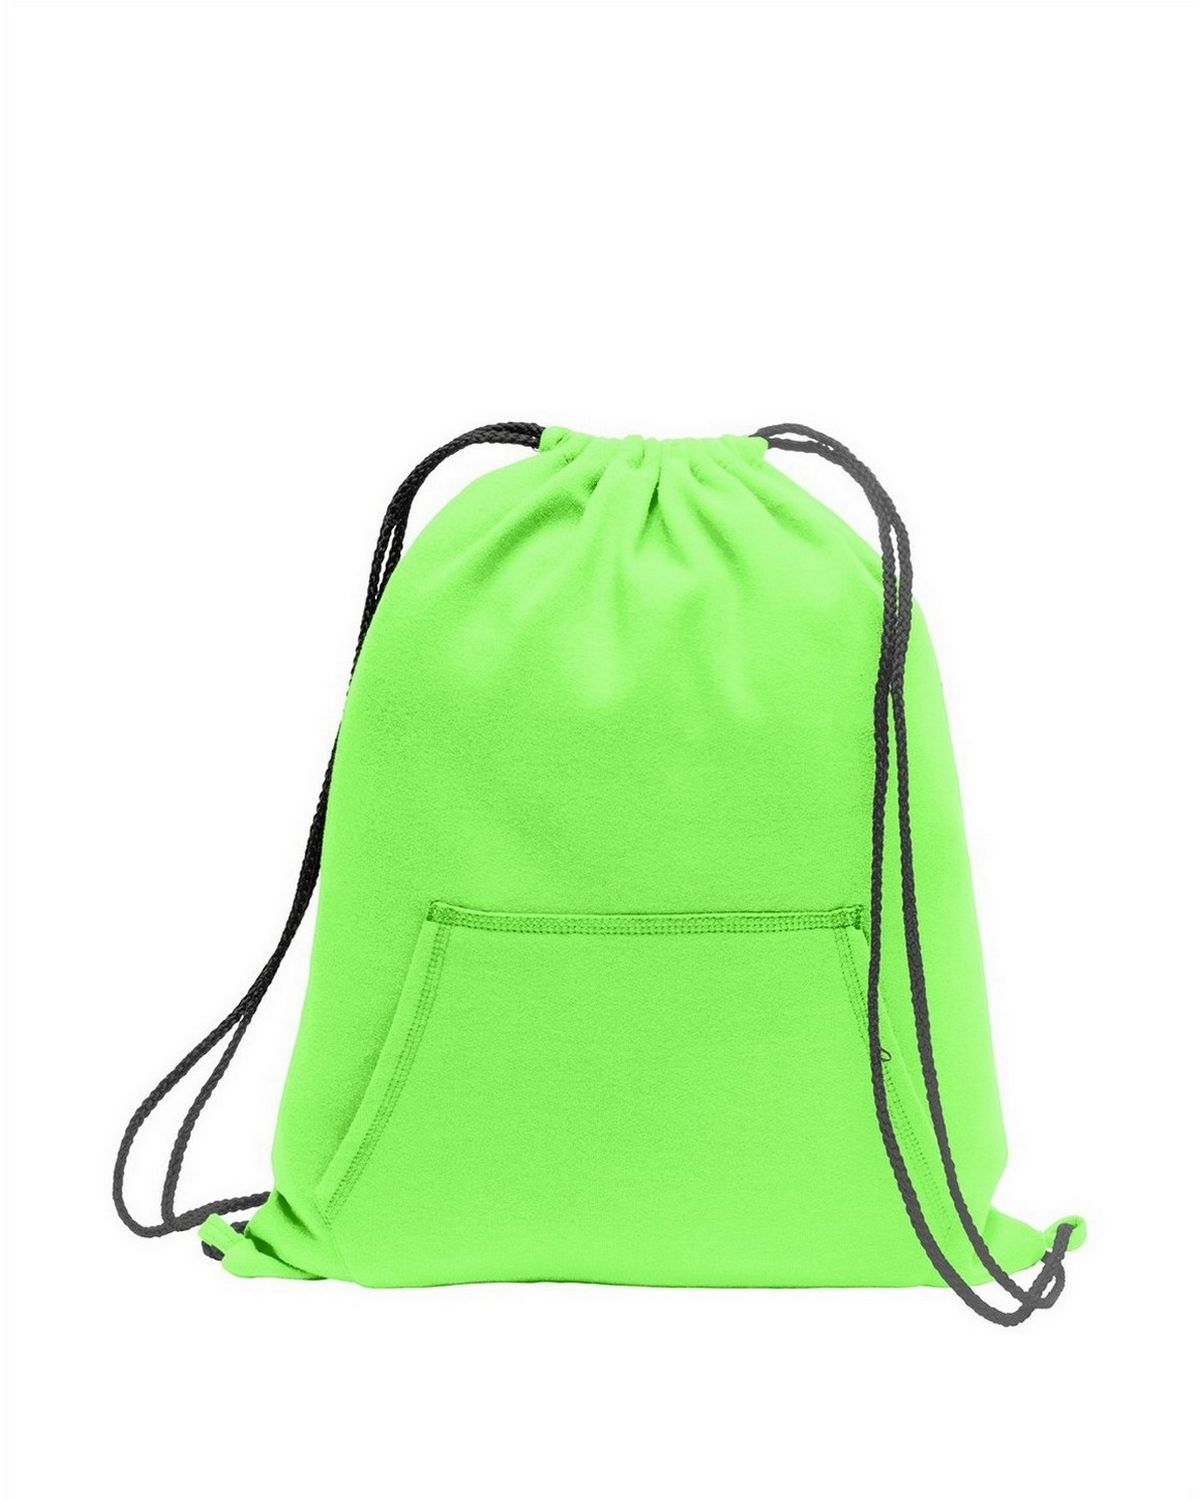 Buy Port Company Bg614 Sweatshirt Cinch Pack Allegra Green Army Diaper Backpack Neon